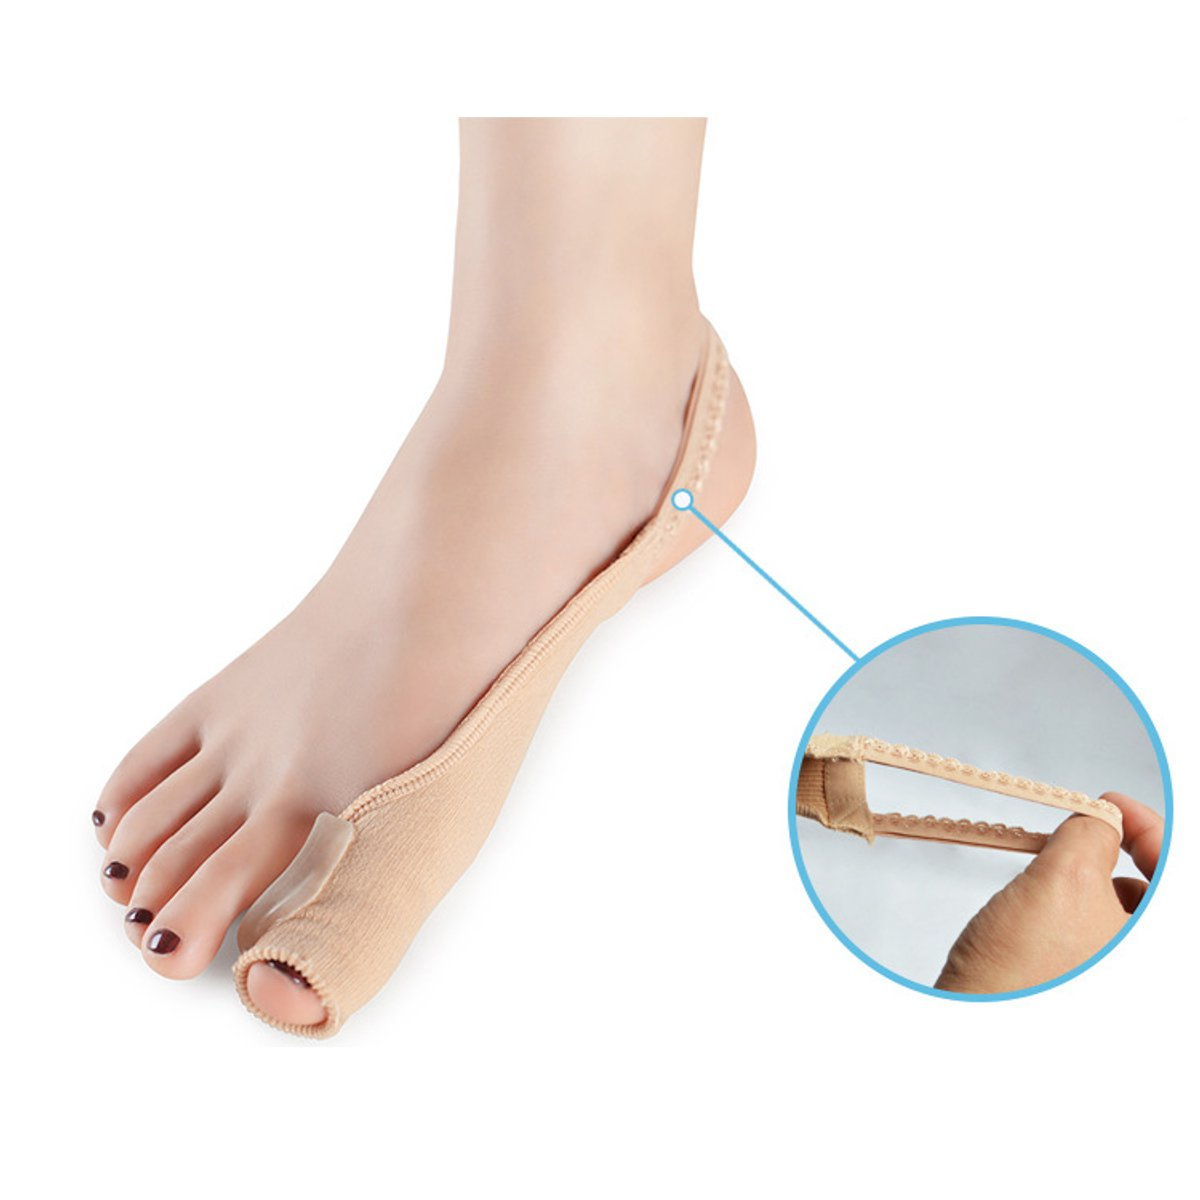 1 Pair Hallux Valgus Bunion Splint Big Toe Correction Separator Pedicure Foot Care